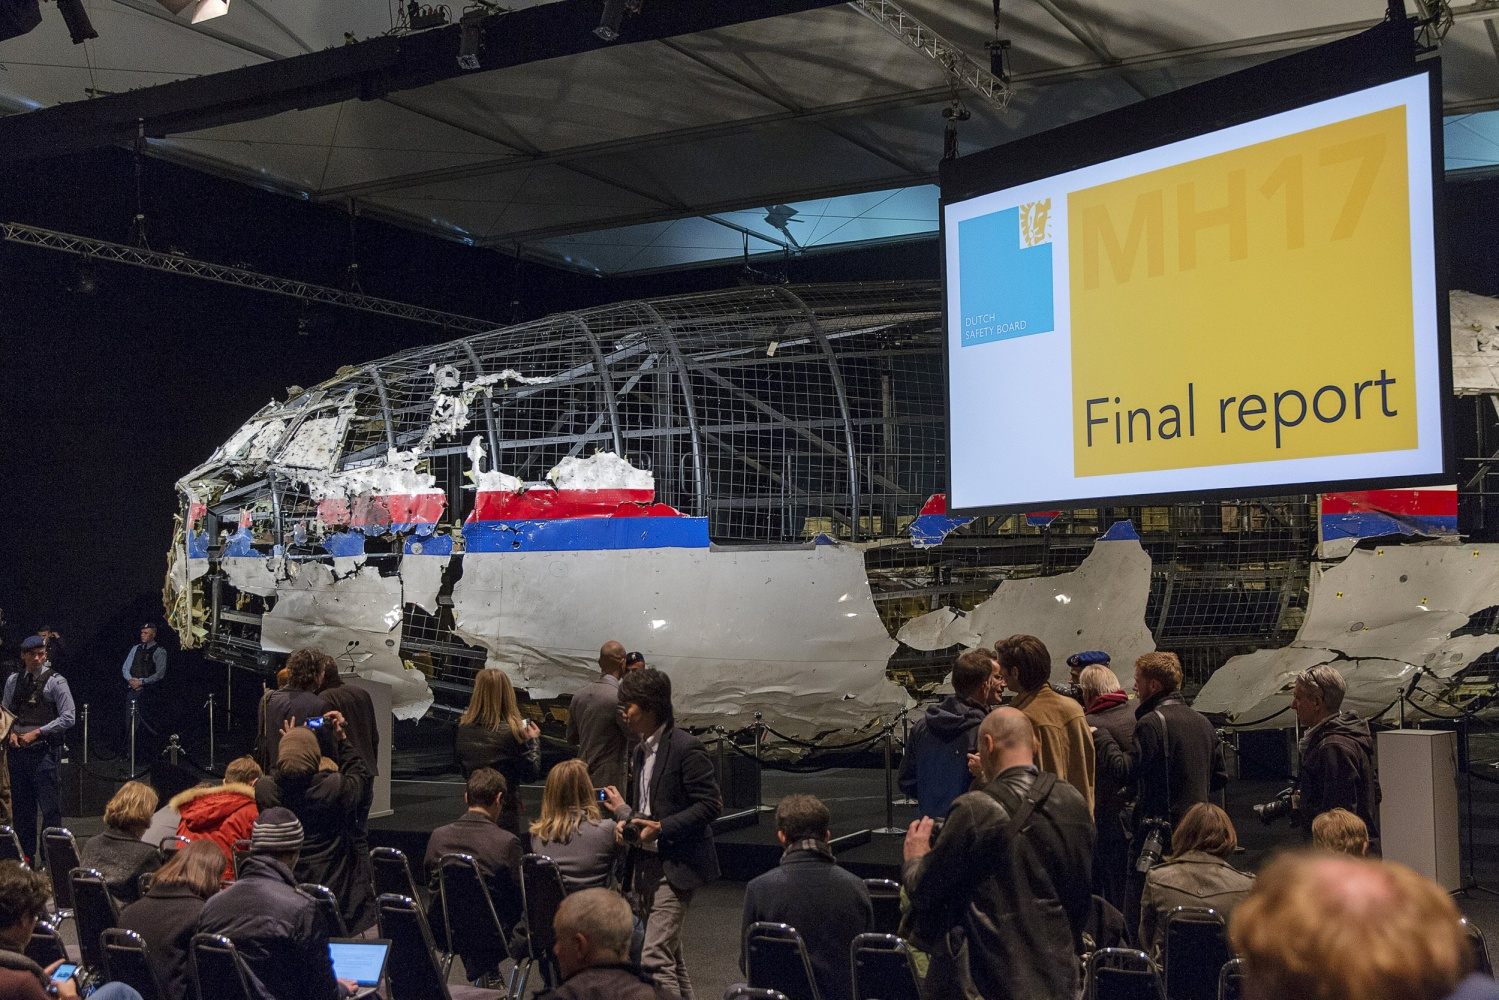 Malaysia Airlines Mh17 Was Downed By Buk Warhead